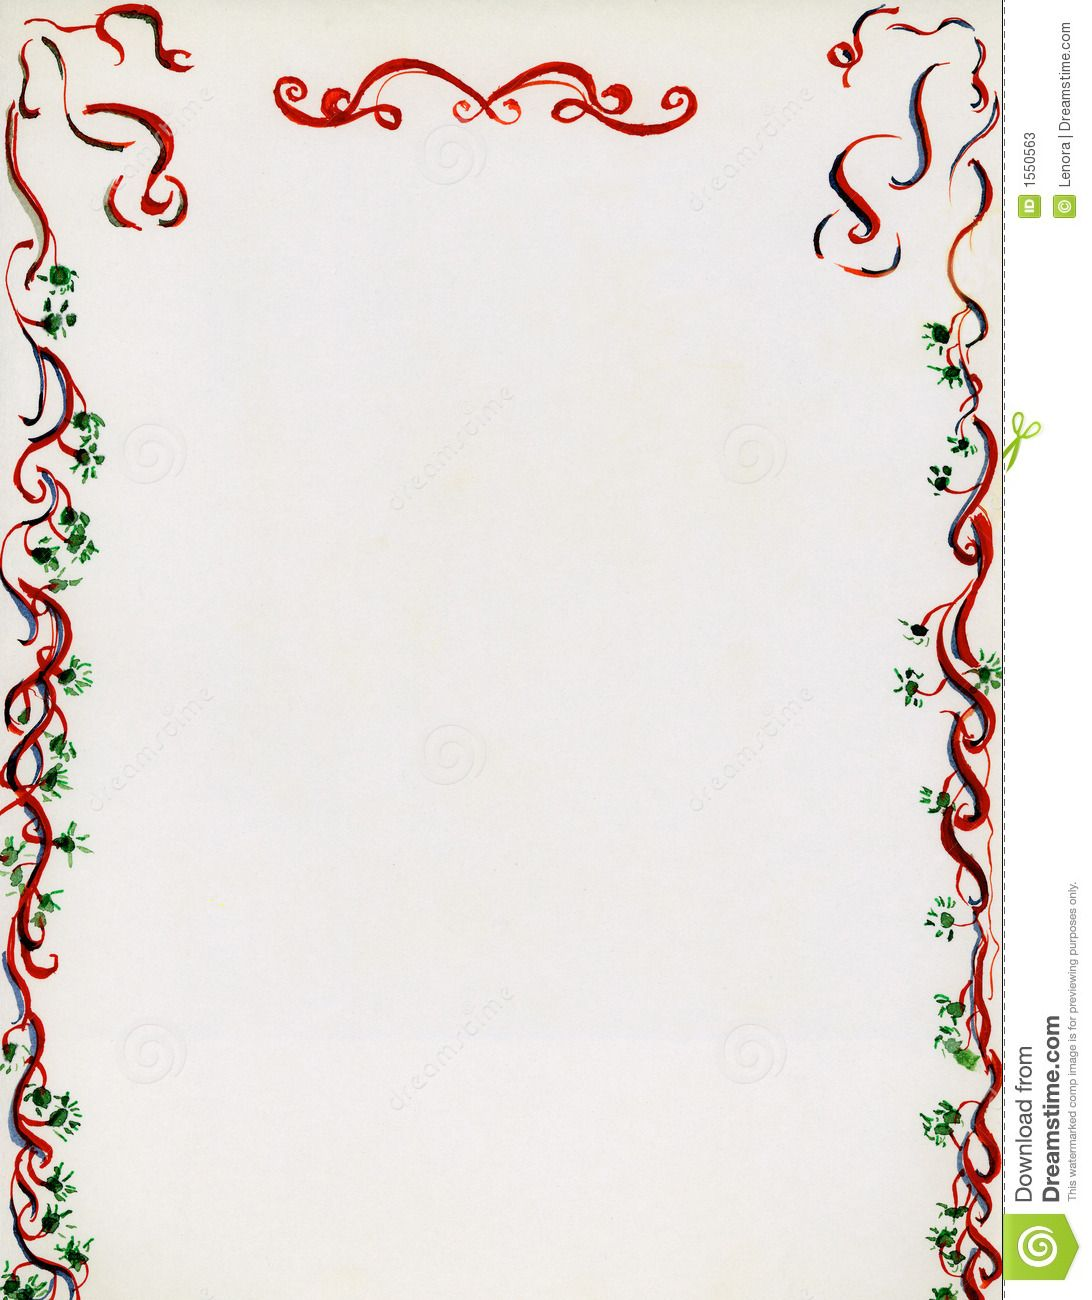 christmas letterhead templates for word (With images